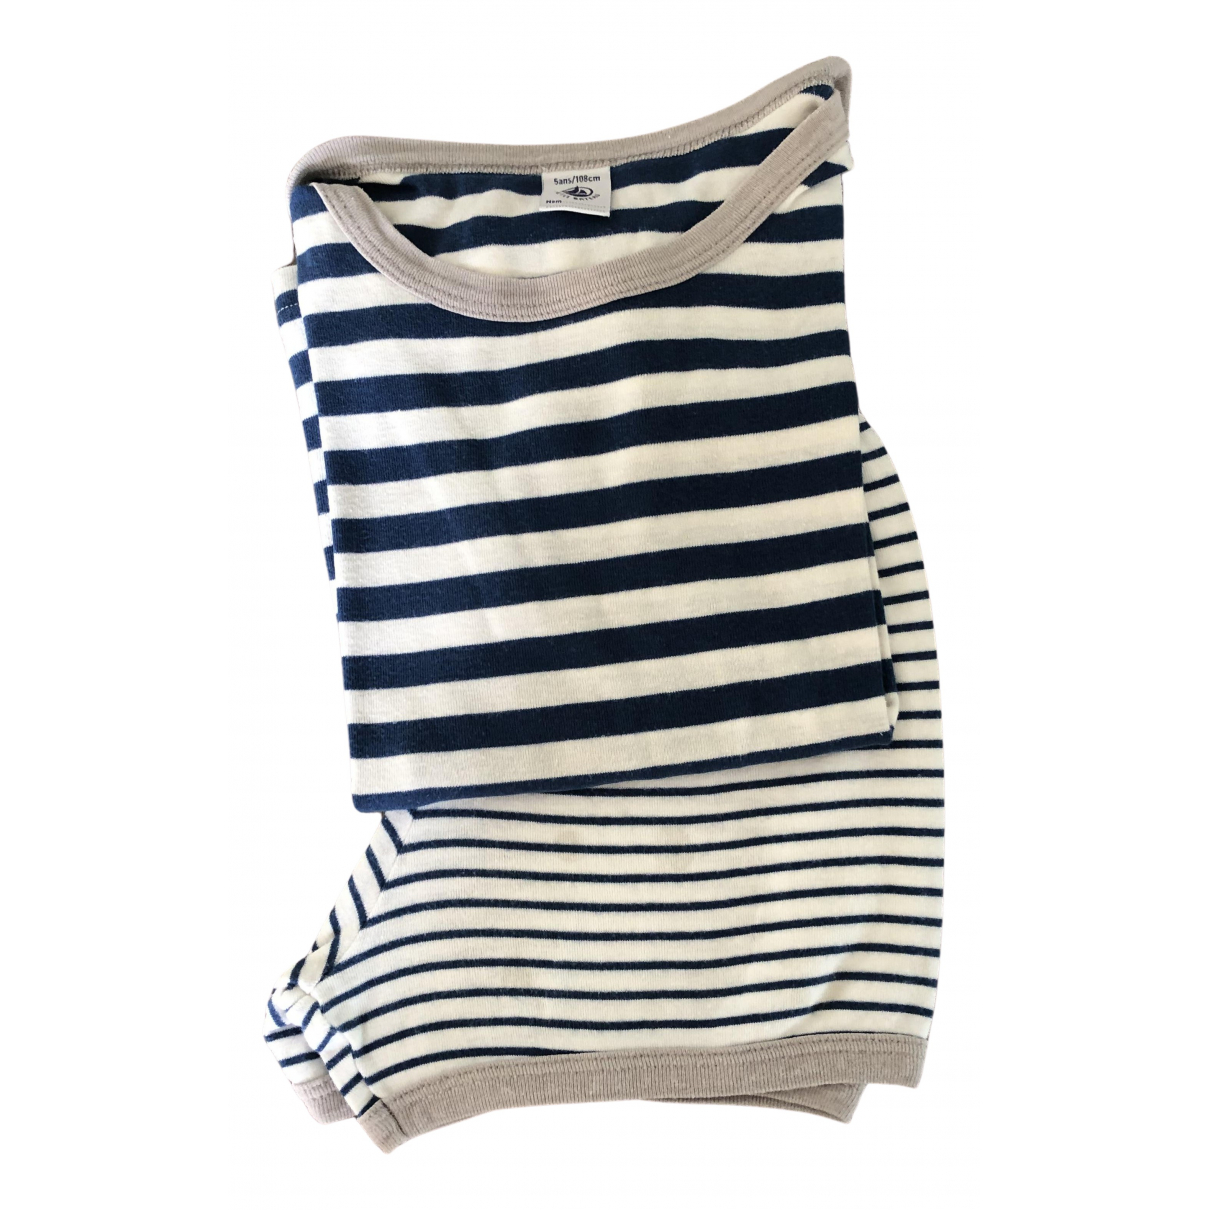 Petit Bateau N Multicolour Cotton Outfits for Kids 5 years - up to 108cm FR